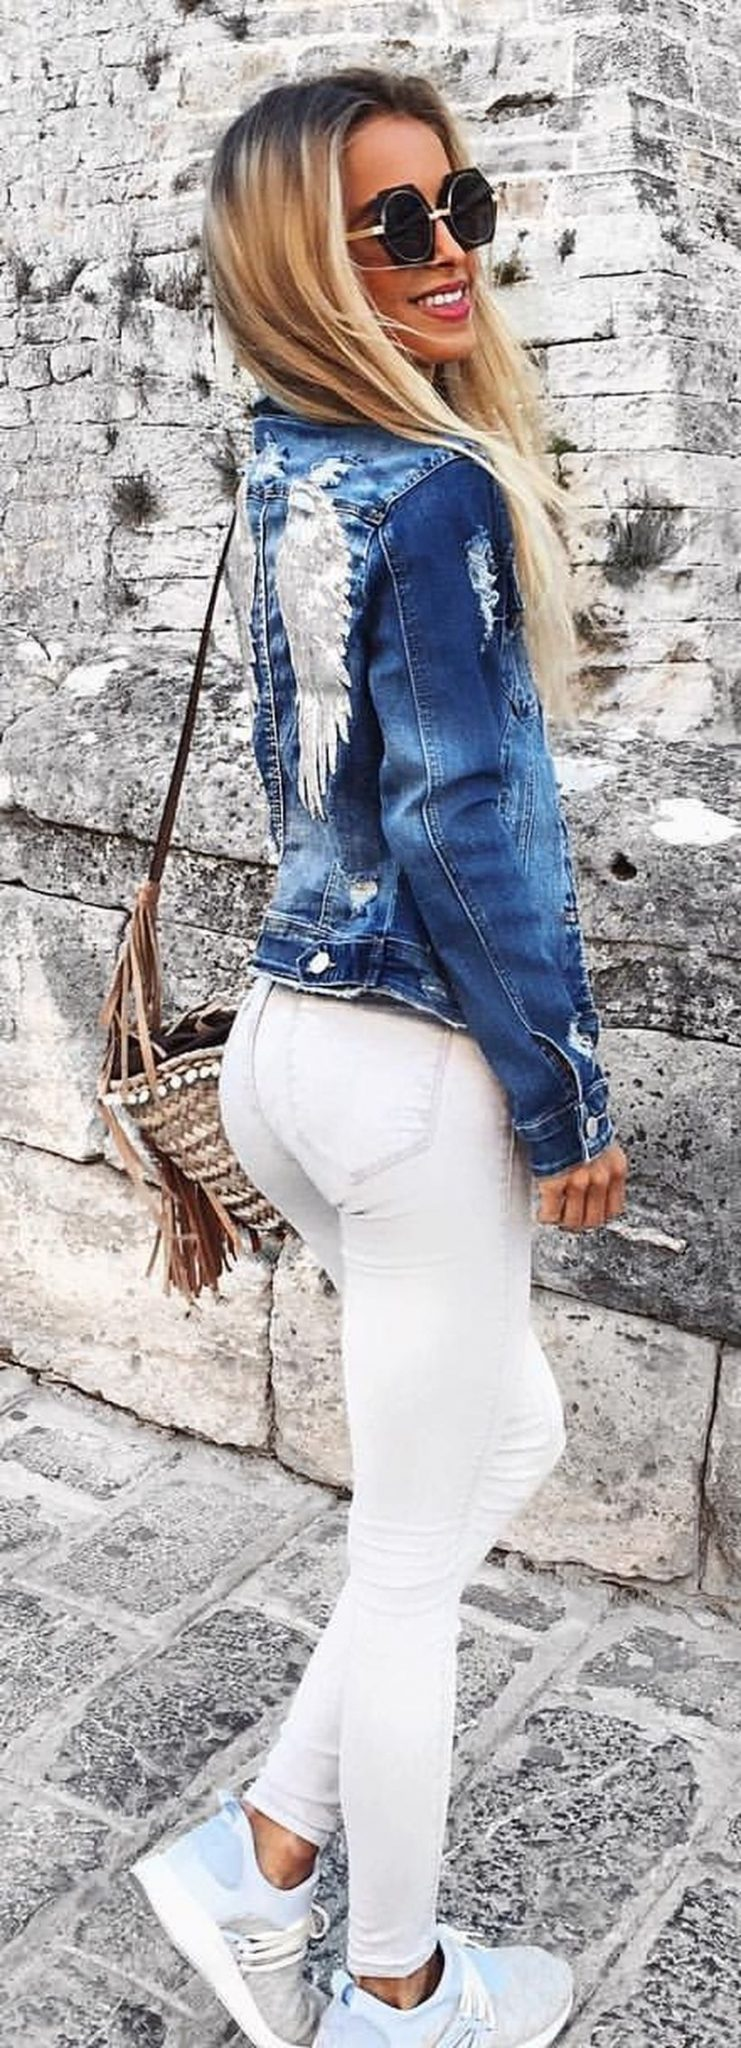 Perfect ways to wear white denim jeans outfits 53